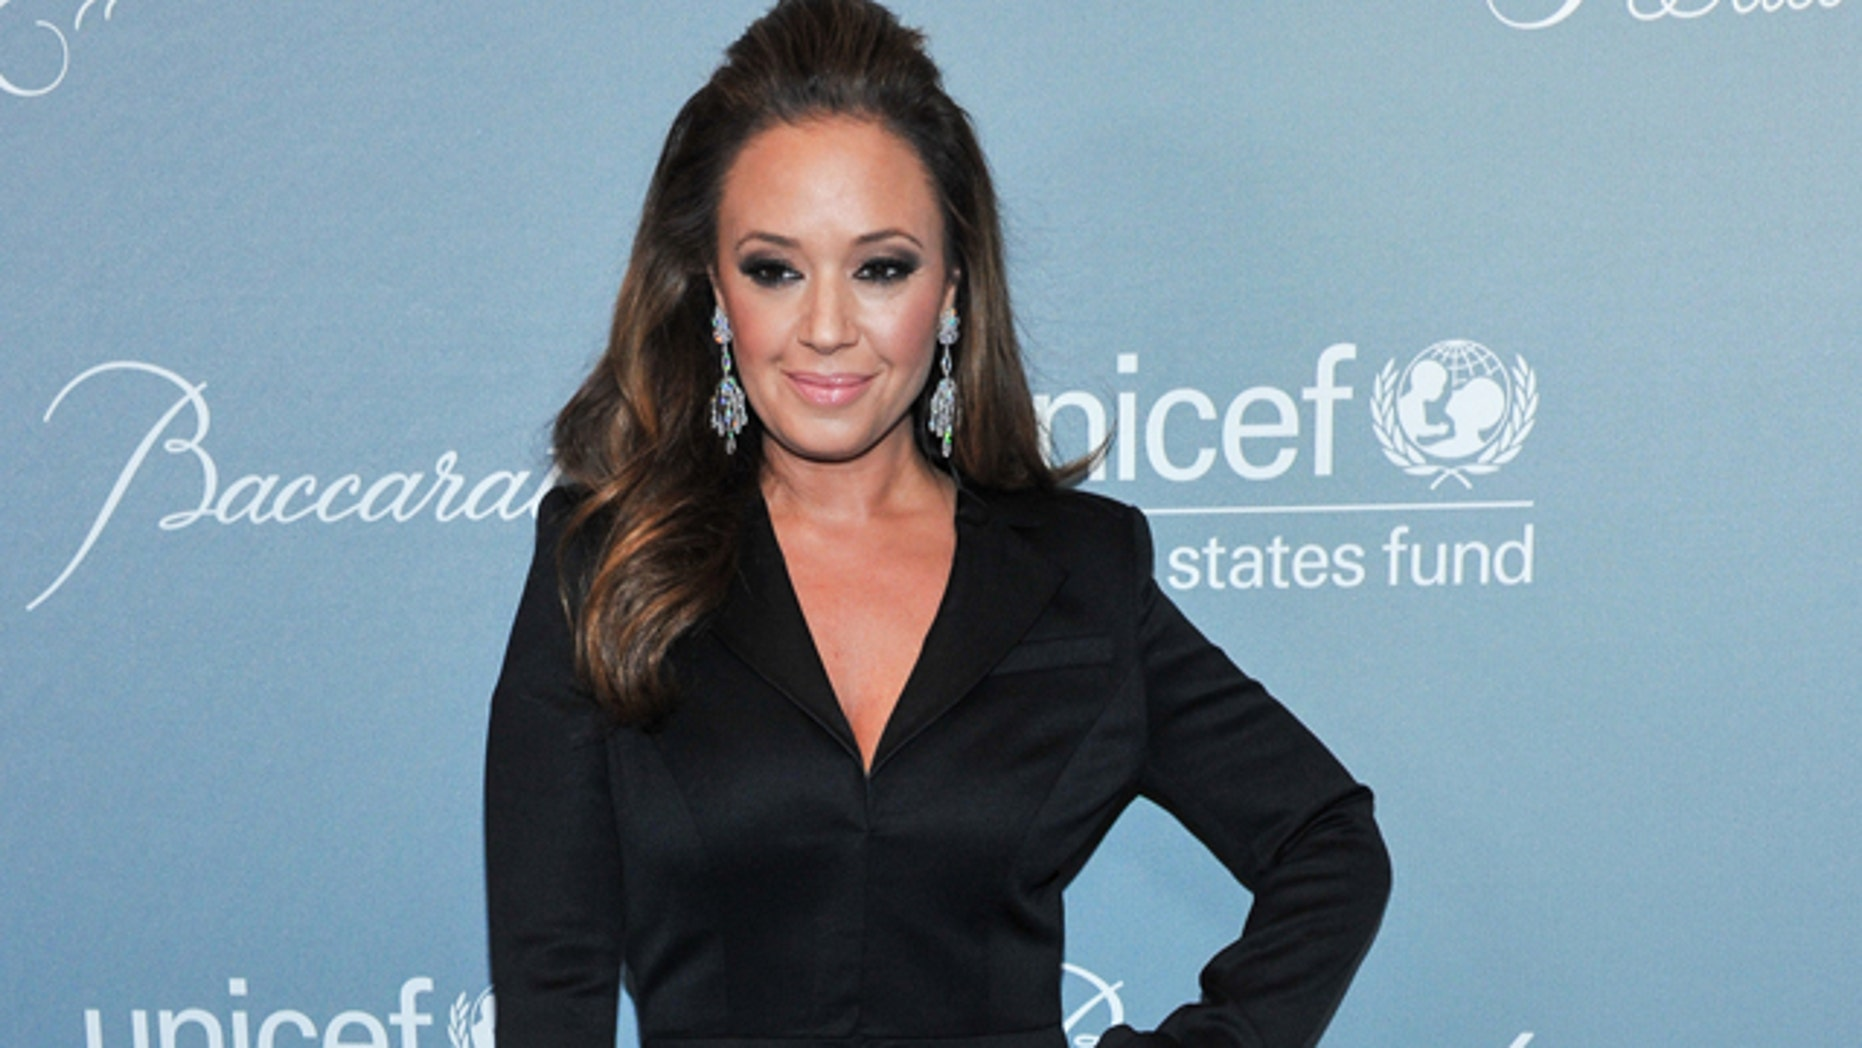 FILE - In this Jan. 14, 2014 file photo, Leah Remini arrives at the 2014 UNICEF Ball in Beverly Hills, Calif. (Photo by Richard Shotwell Invision/AP, File)